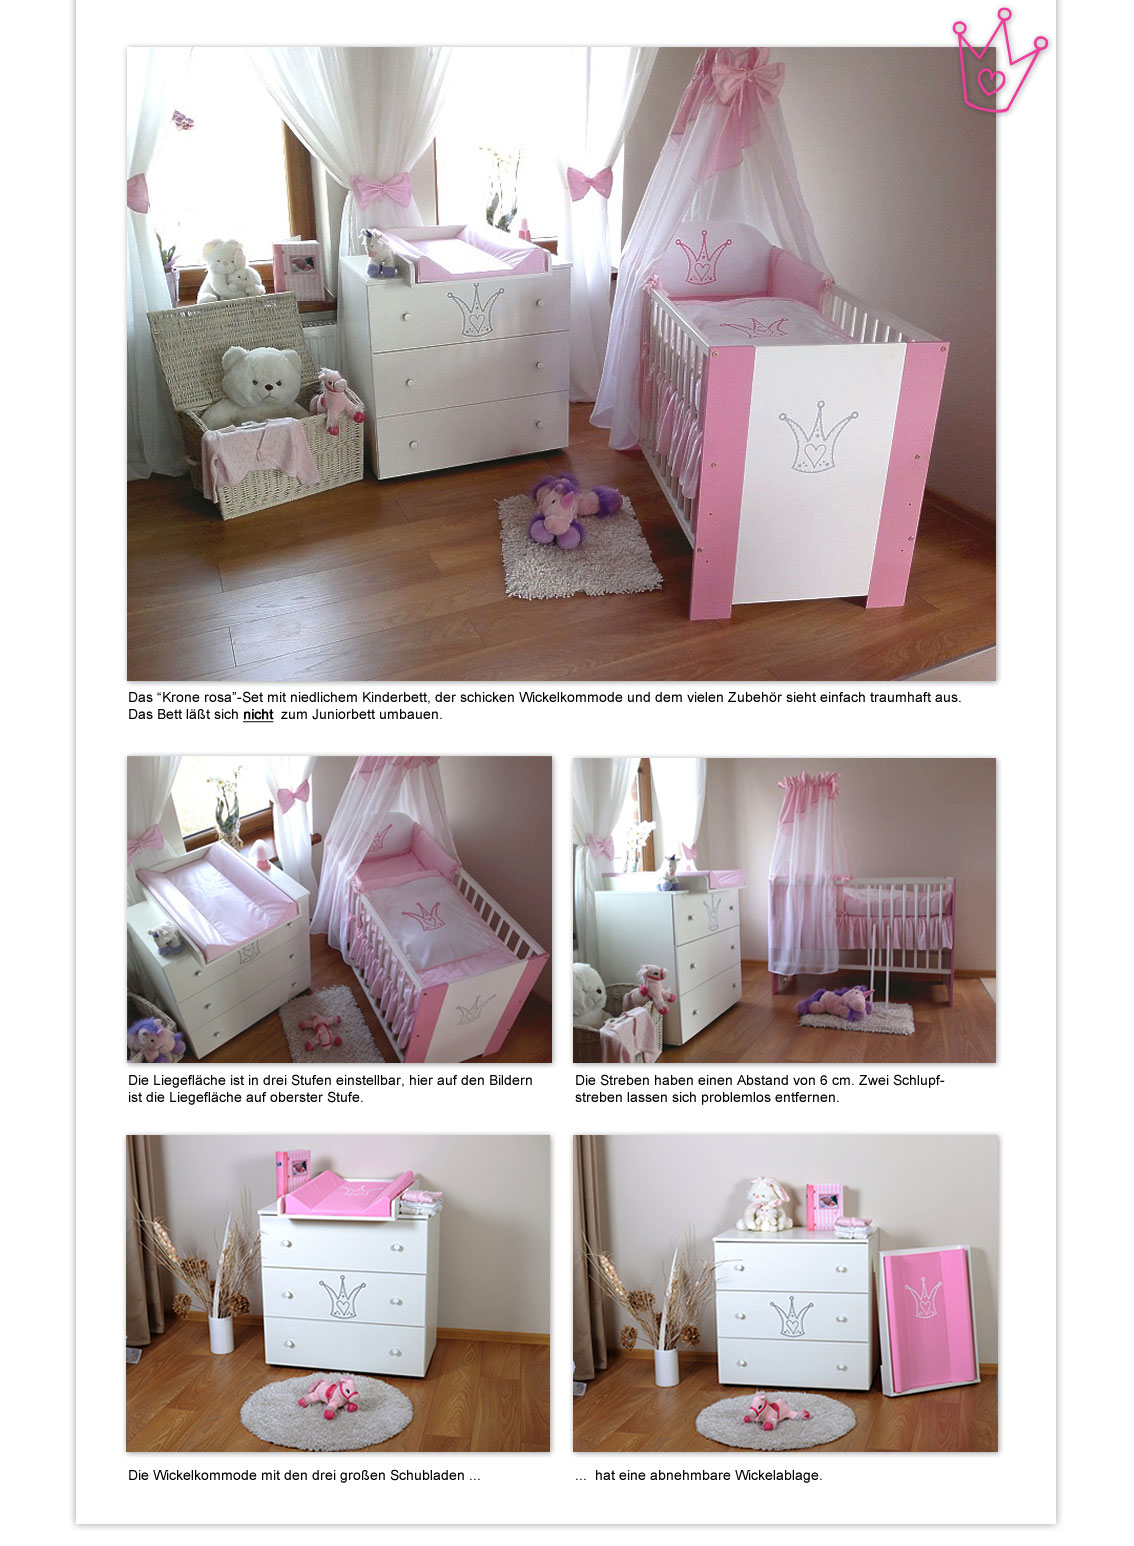 krone rosa komplett set babybett kinderbett wickelkommode babyzimmer baby bett 4260253173555 ebay. Black Bedroom Furniture Sets. Home Design Ideas